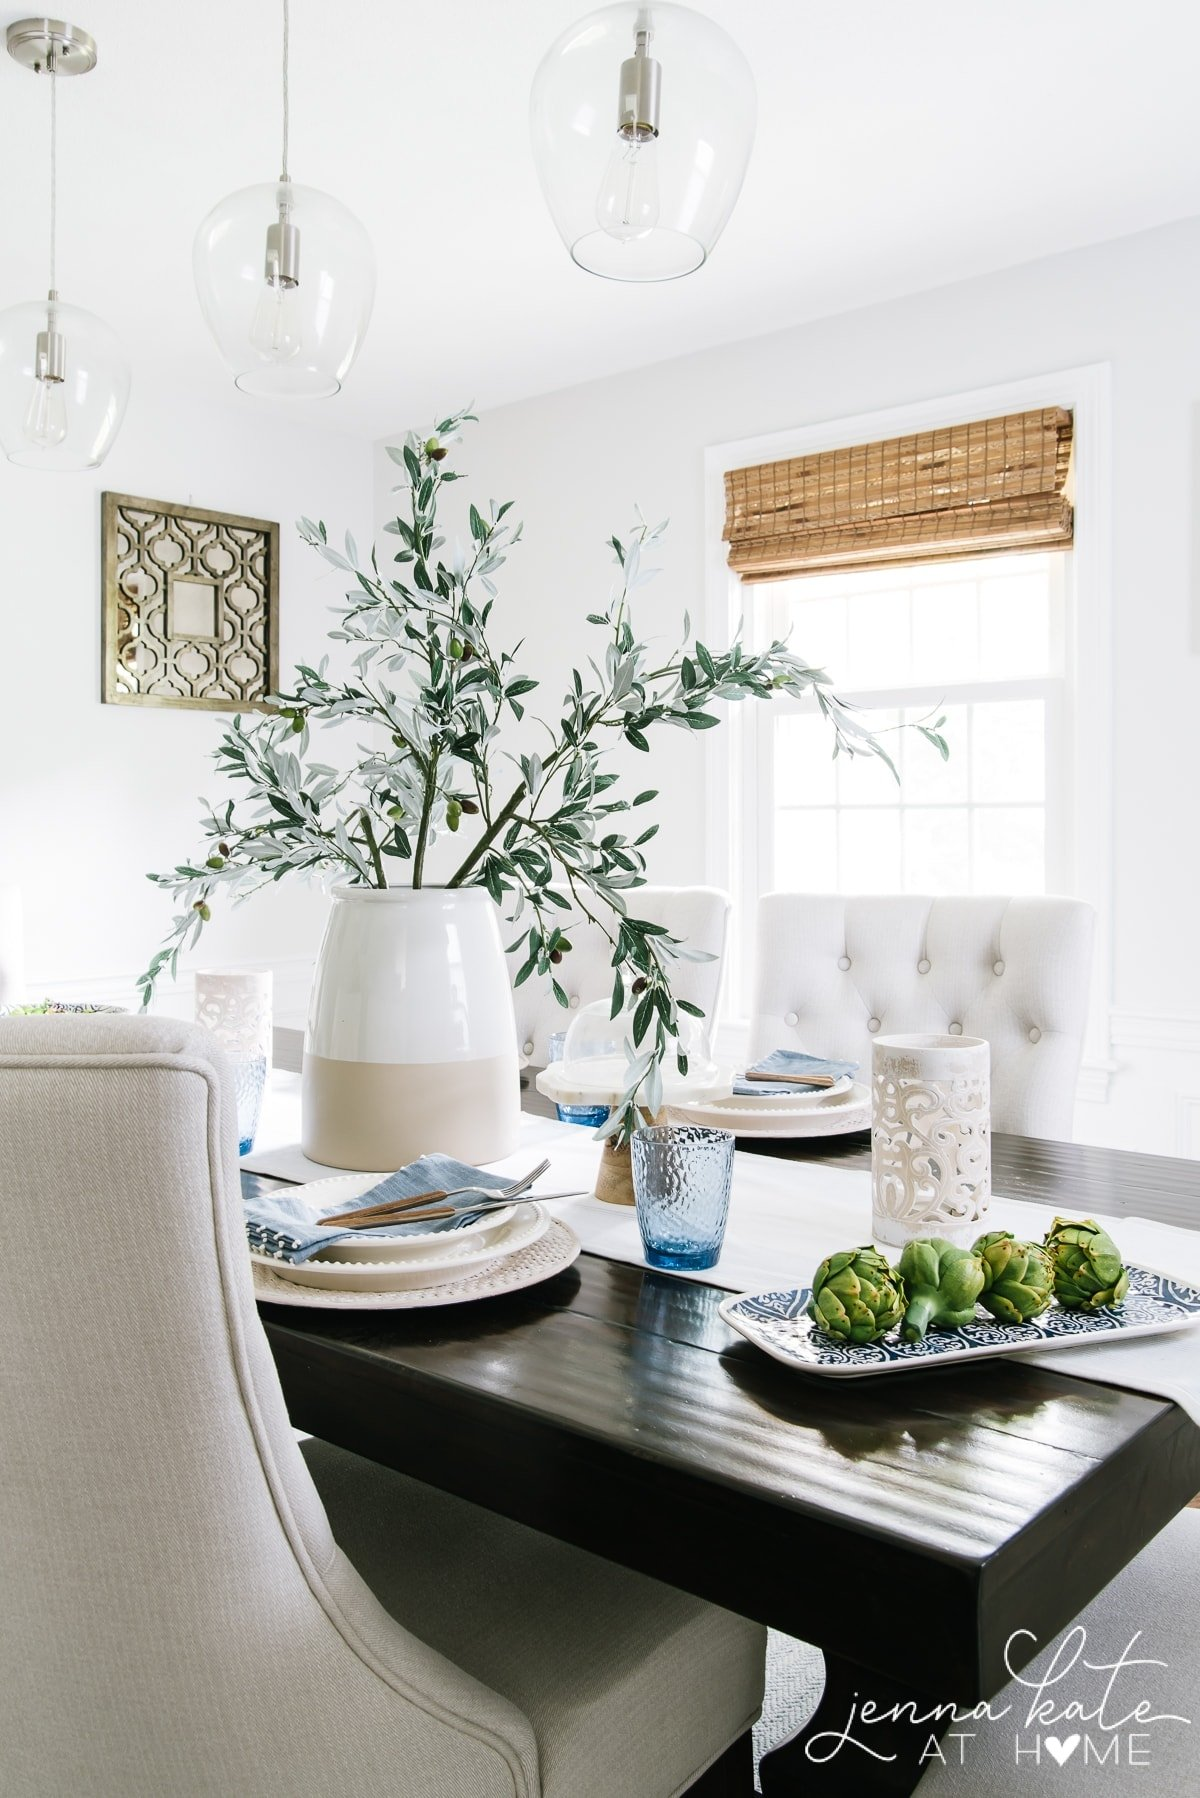 Ideas for indoor or outdoor summer tablescapes